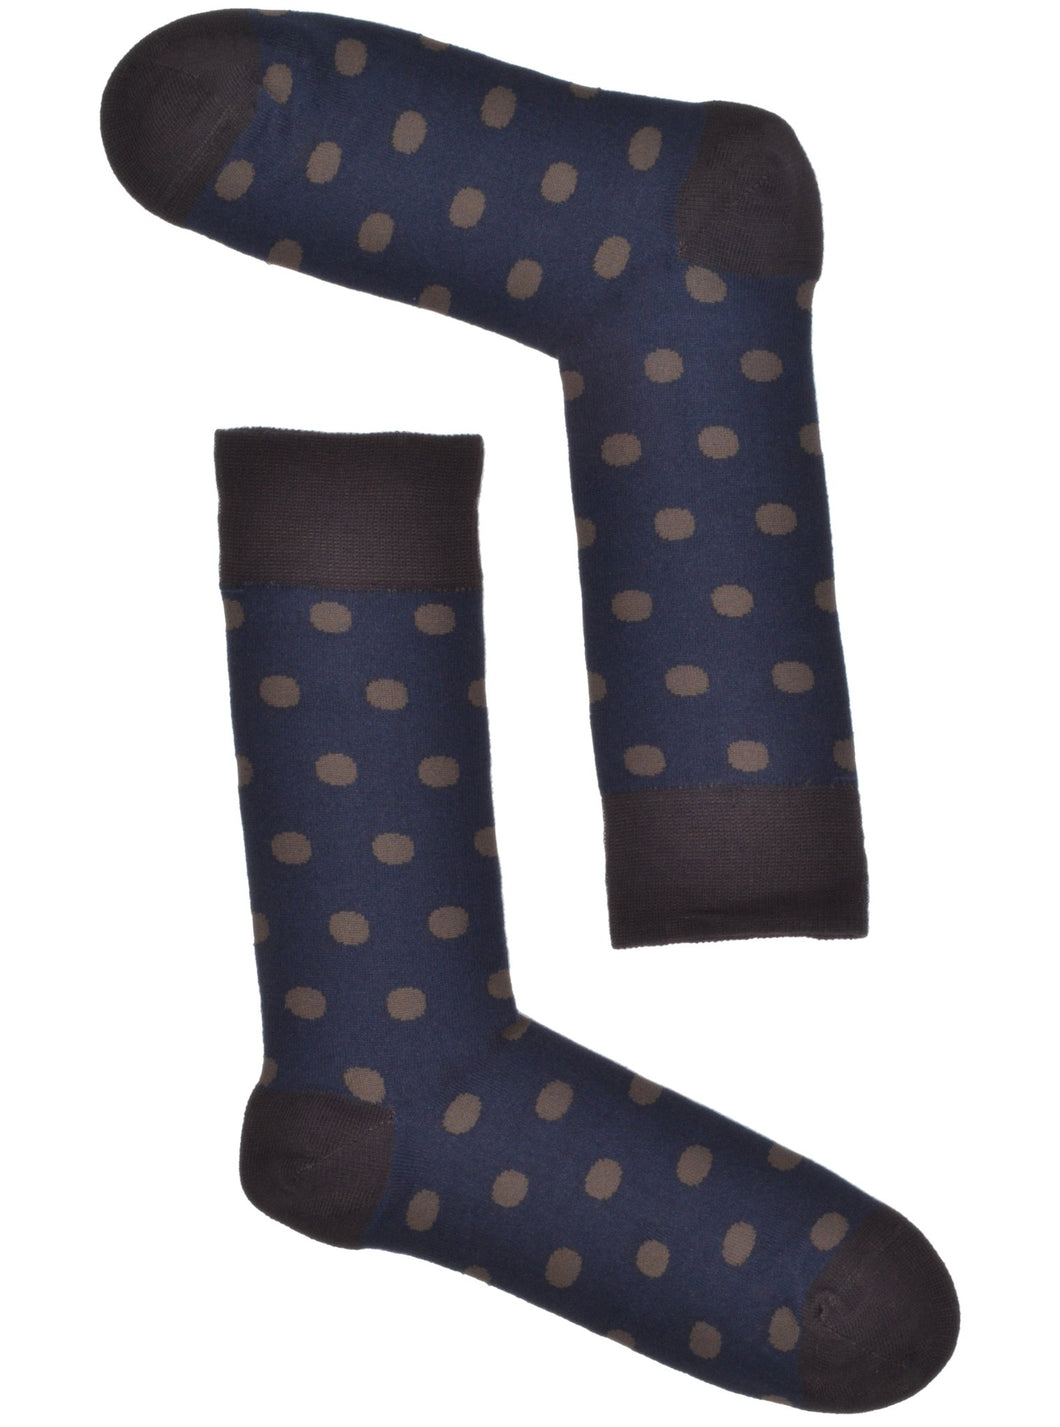 Navy & Tan Polkadot Socks